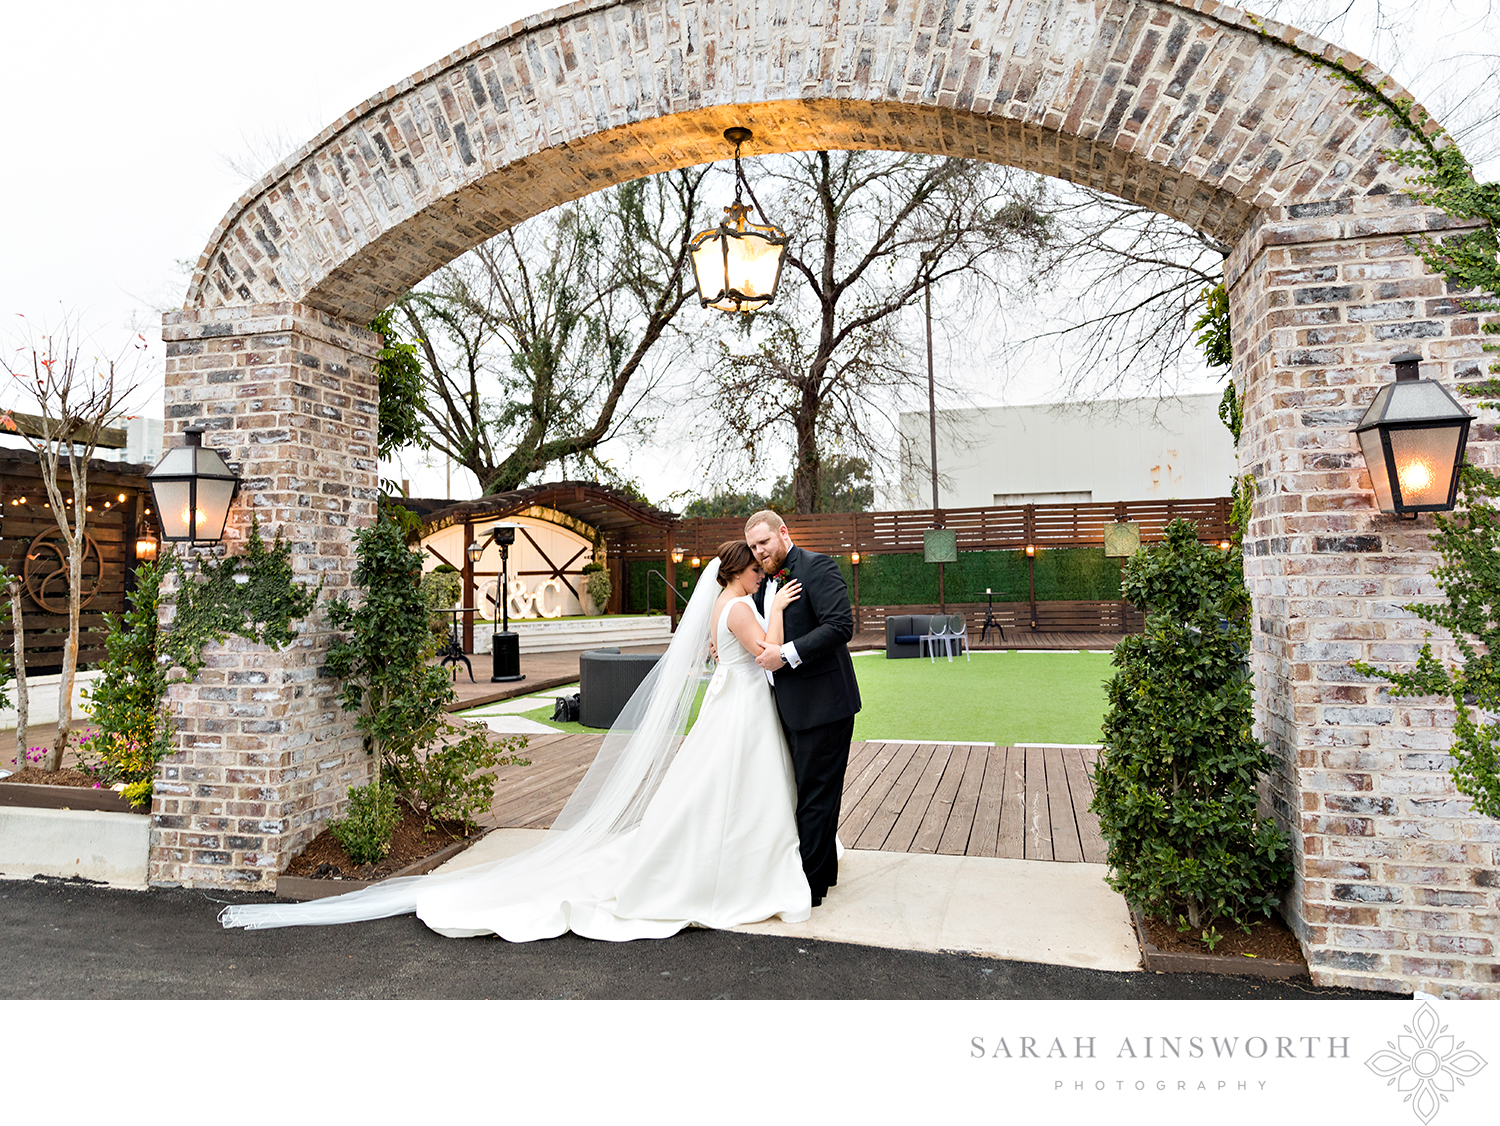 01_hughes-manor-wedding-downtown-houston-wedding-venues-all-inclusive-wedding-venues-courtyard-outdoor-wedding_07.jpg